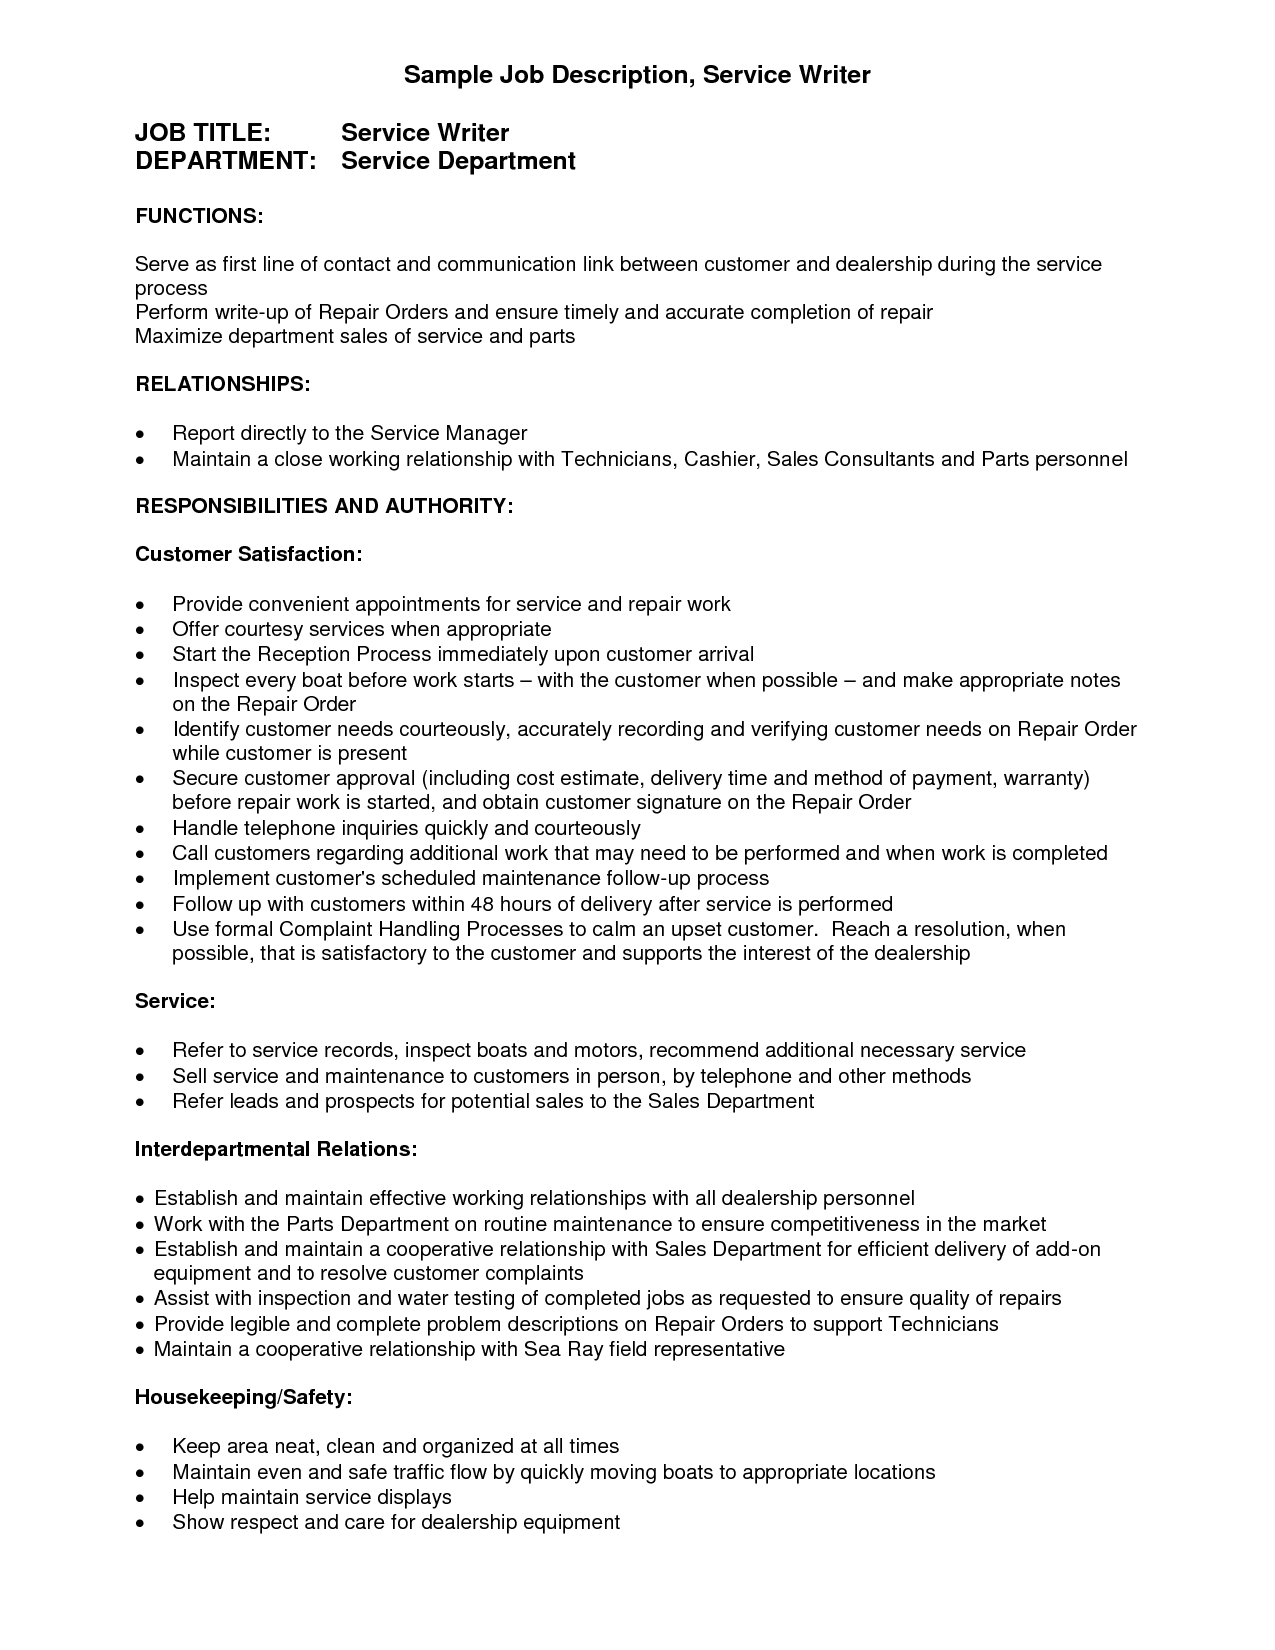 Sales associate Cover Letter Template - Resume Writing Service Best Templatewriting A Resume Cover Letter